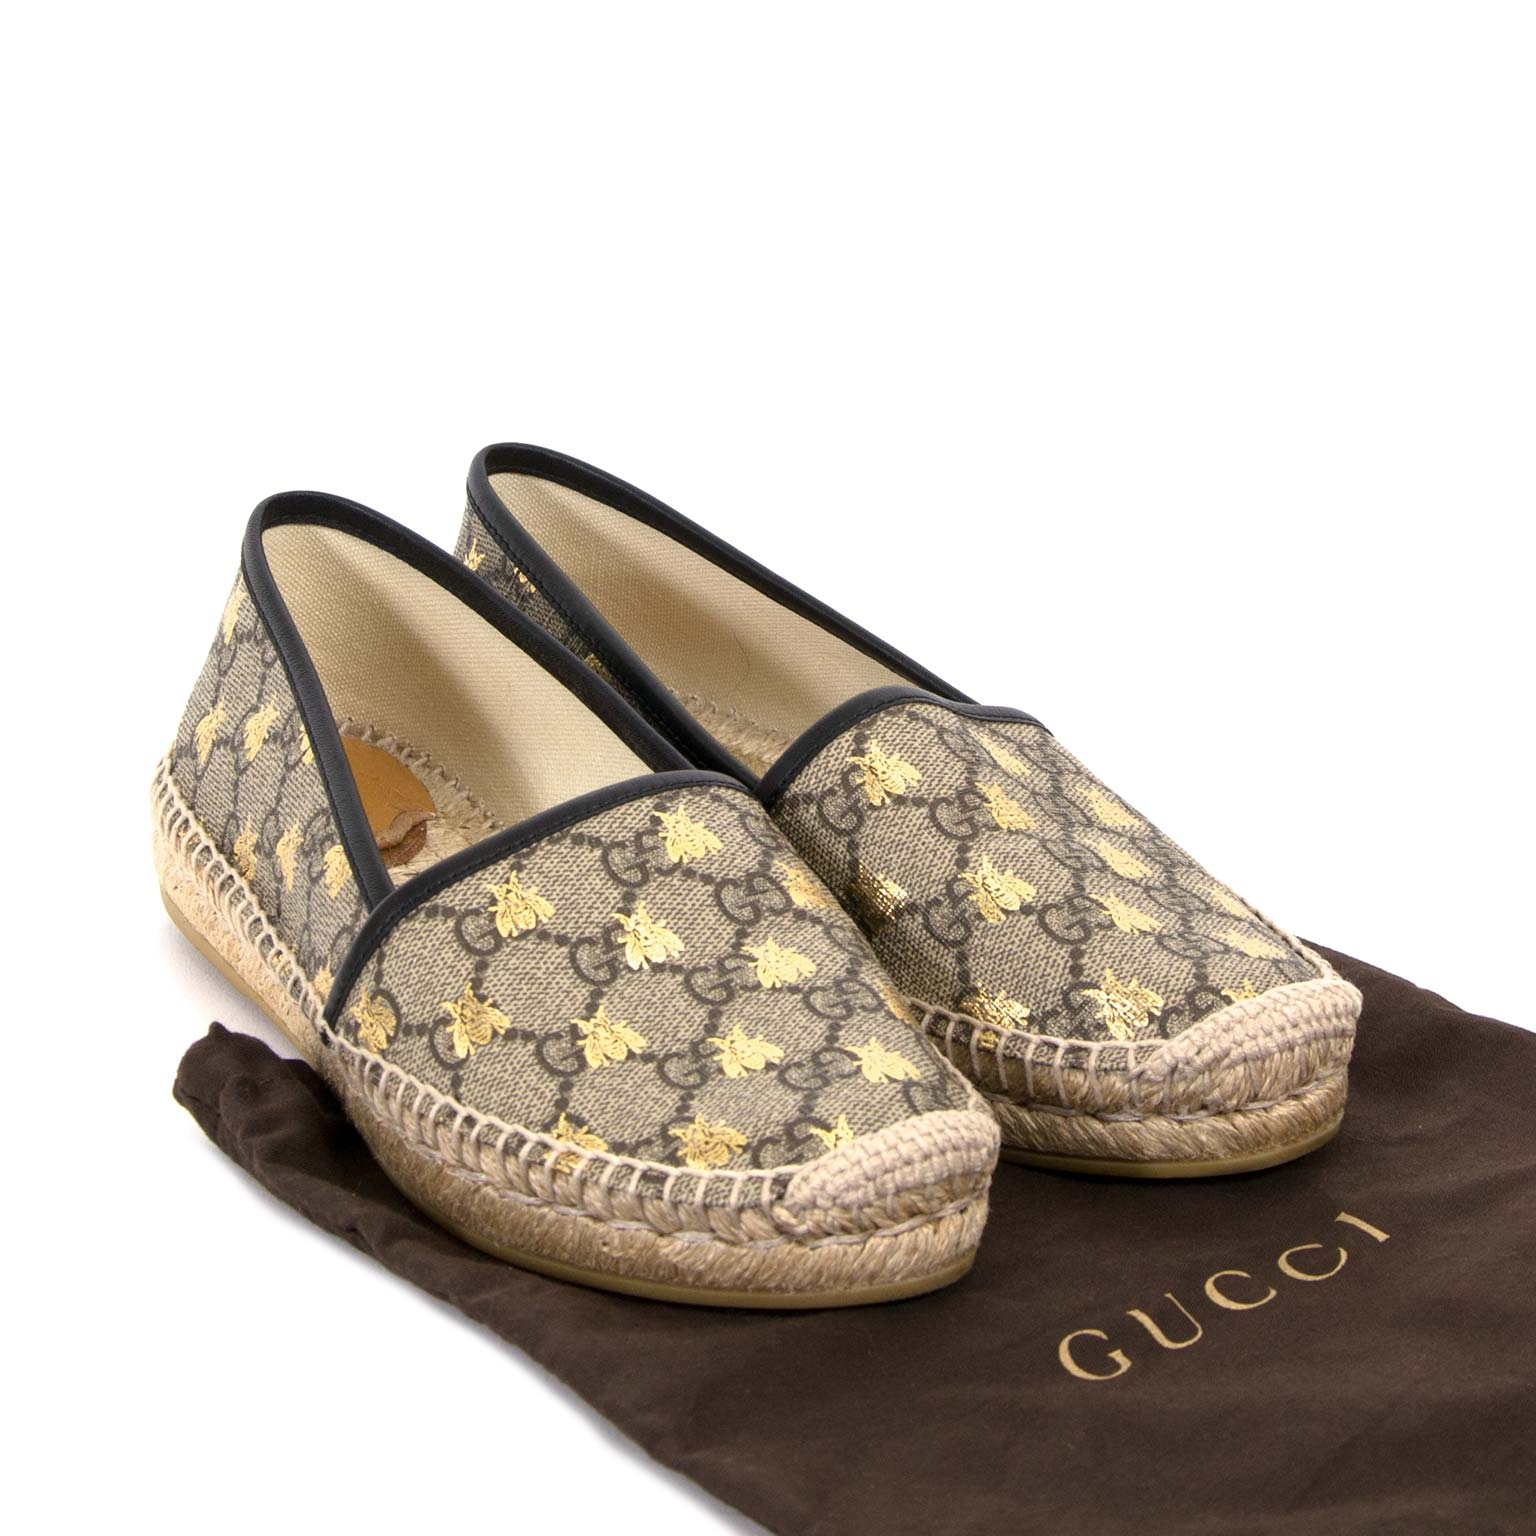 gucci gg supreme bees monogram espadrilles now for sale at labellov vintage fashion webshop belgium